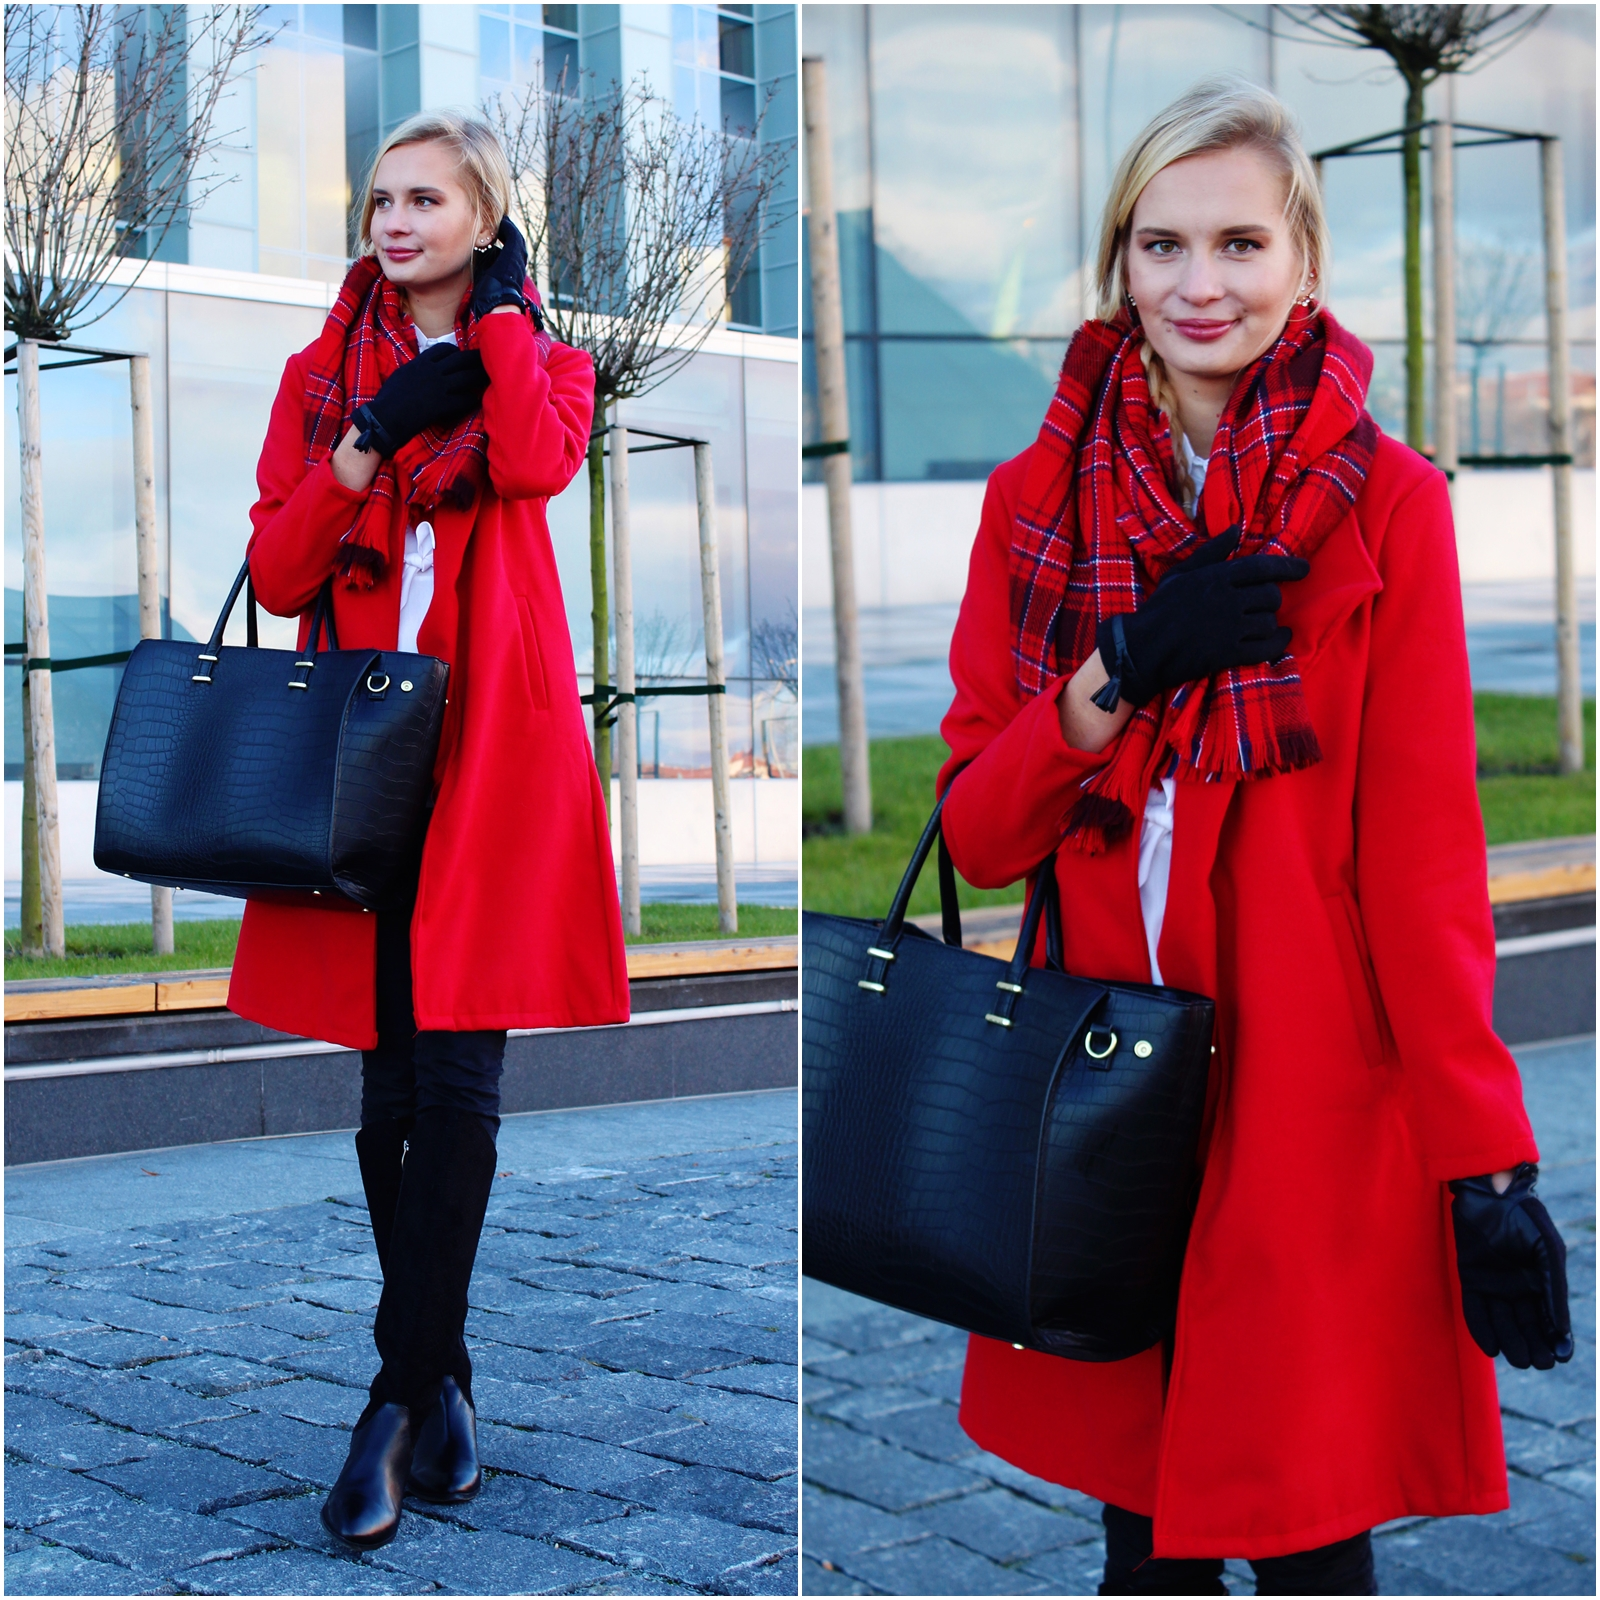 Tartan scarf and red coat